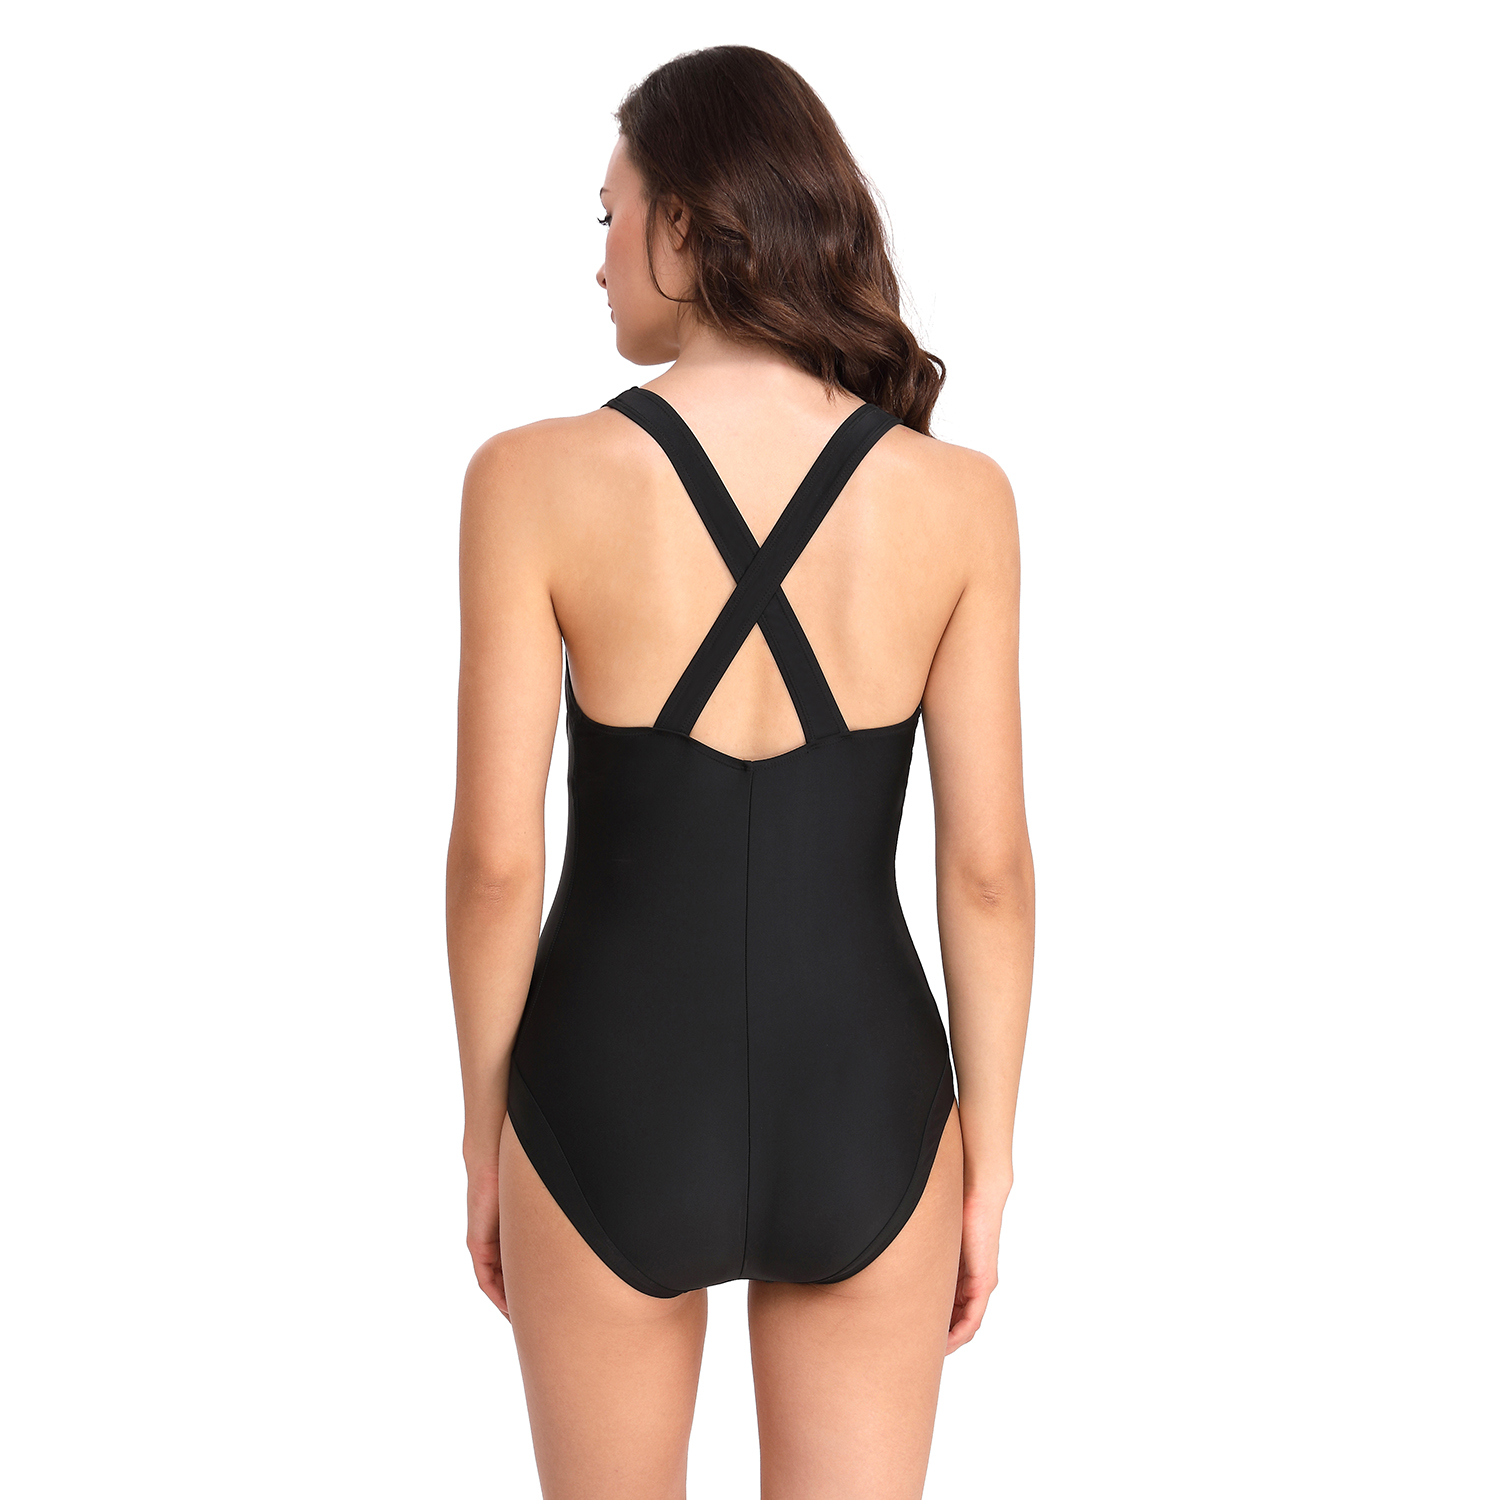 FC sports monokini women's swimwear, small order, stocklots